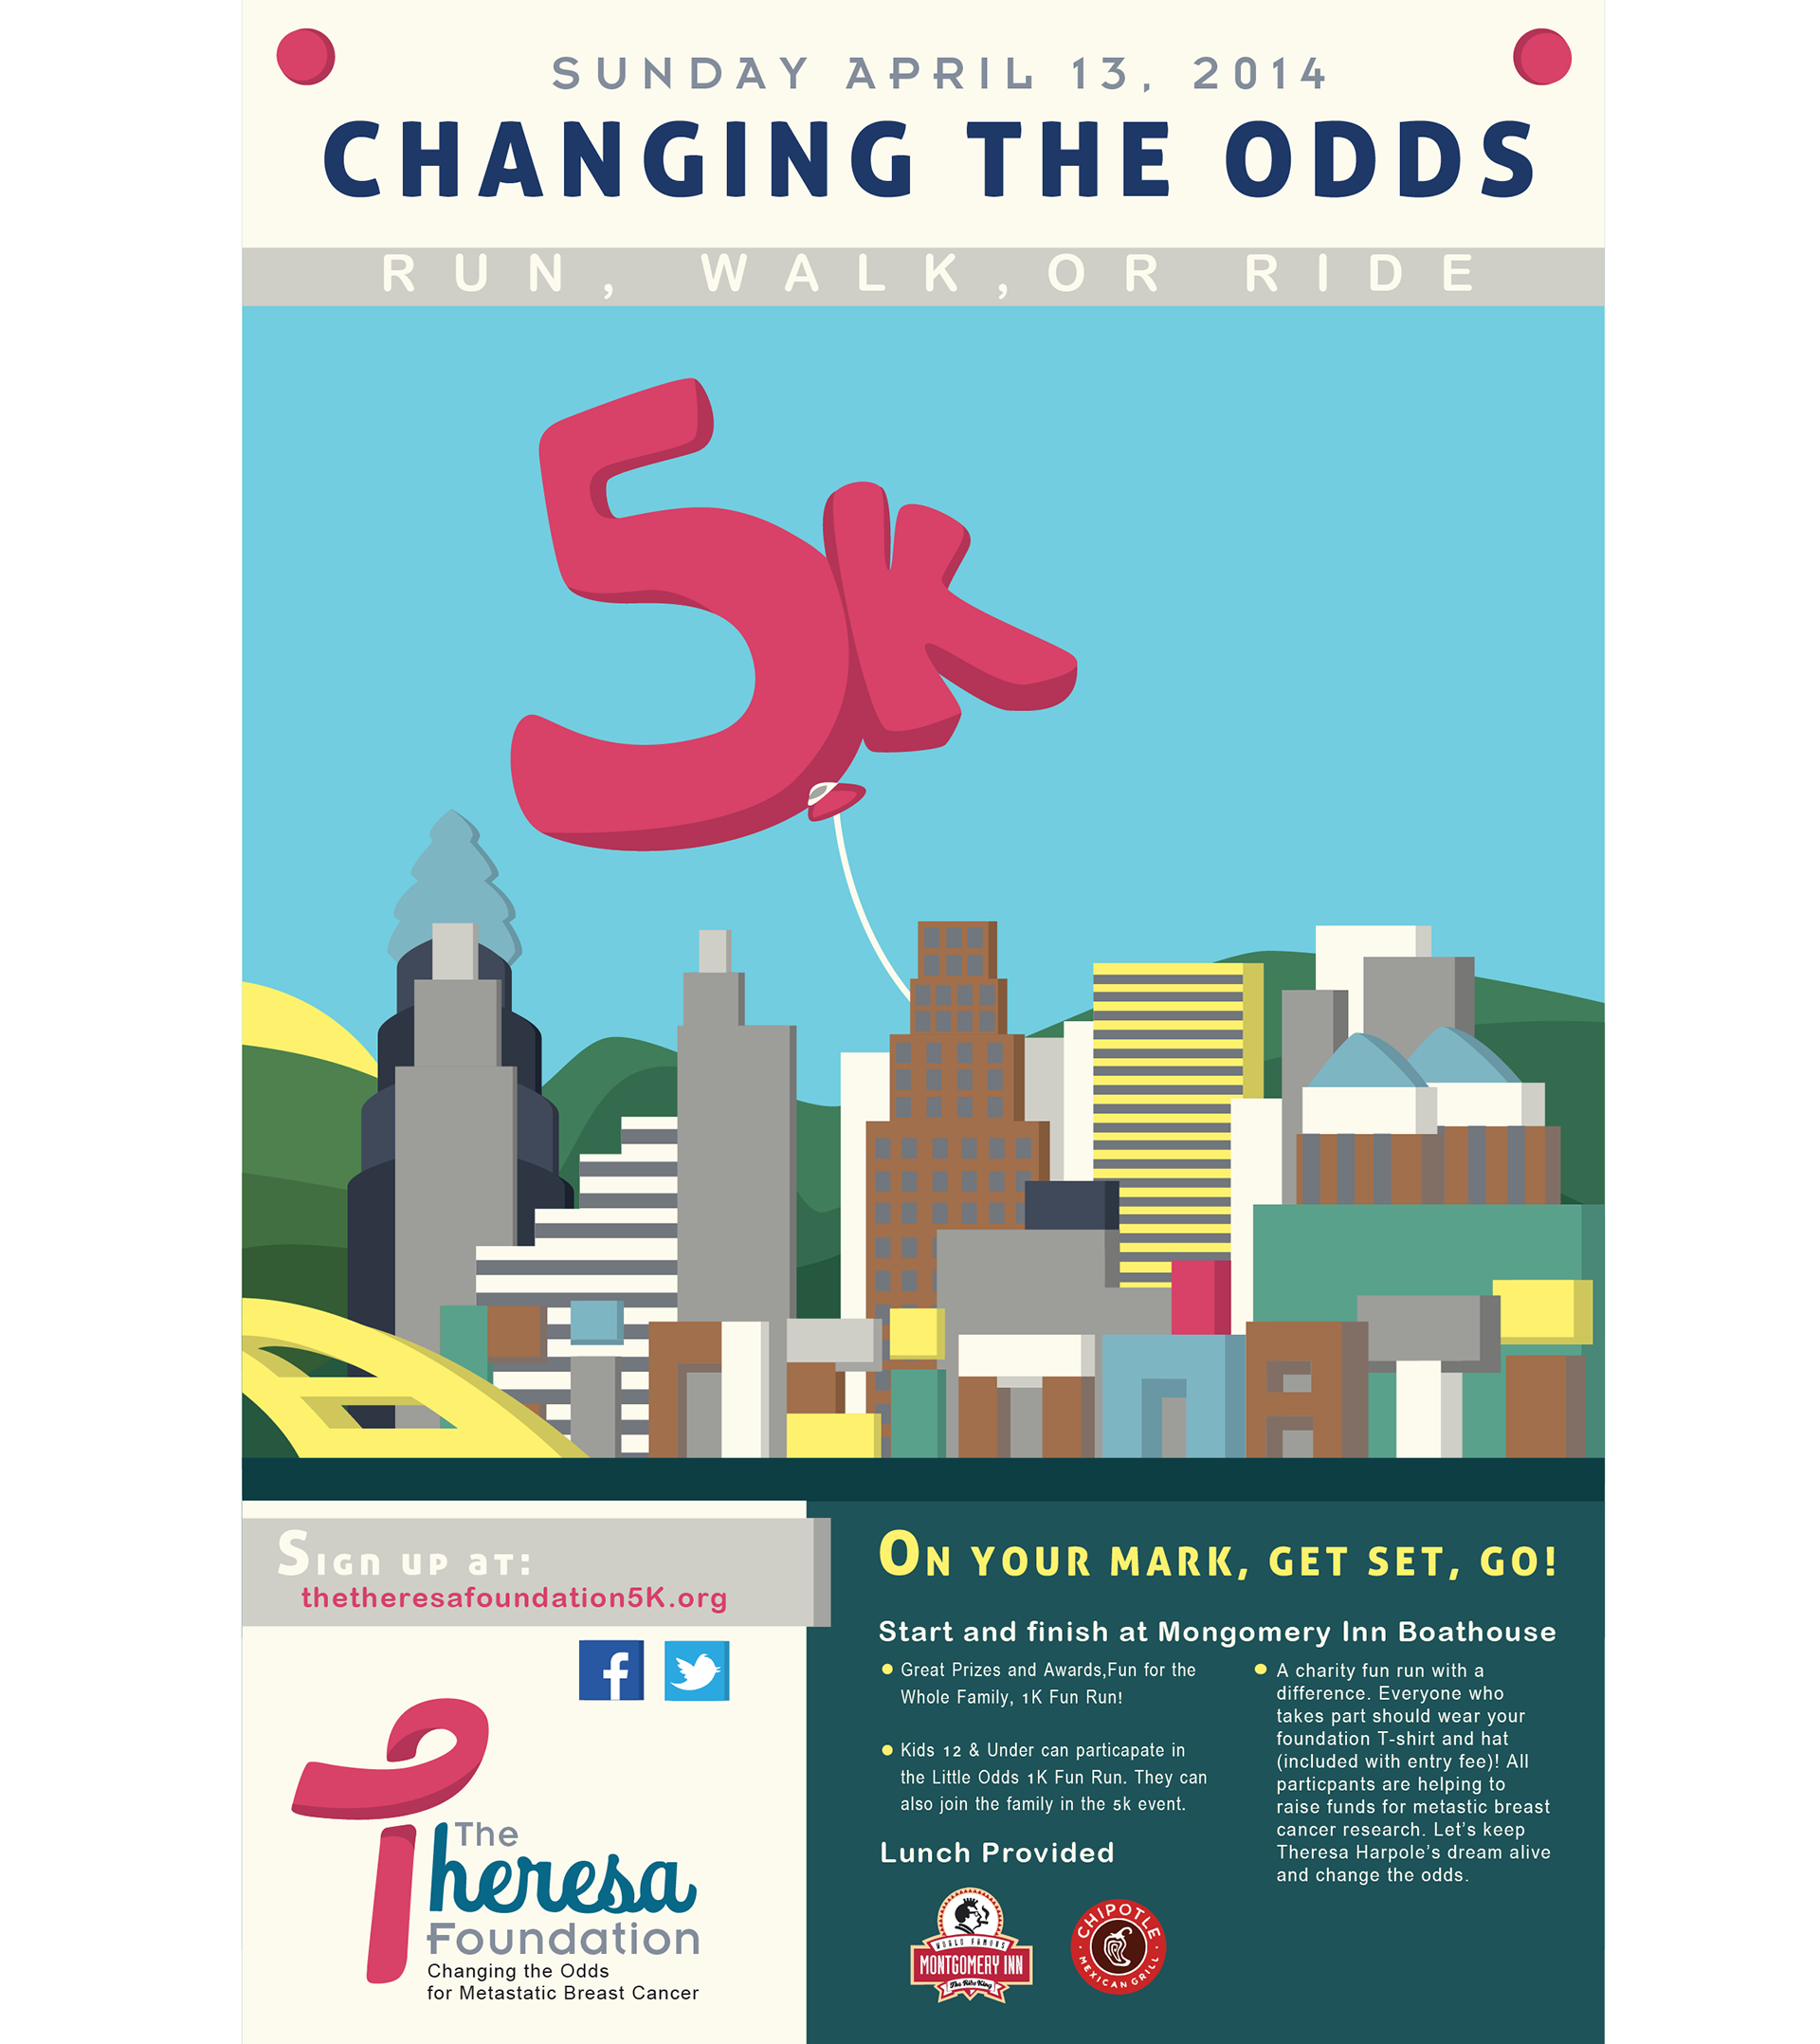 5k poster design - Applied The Theresa Foundation Brand Across A Poster Design Promoting A 5k Run In Cincinnati